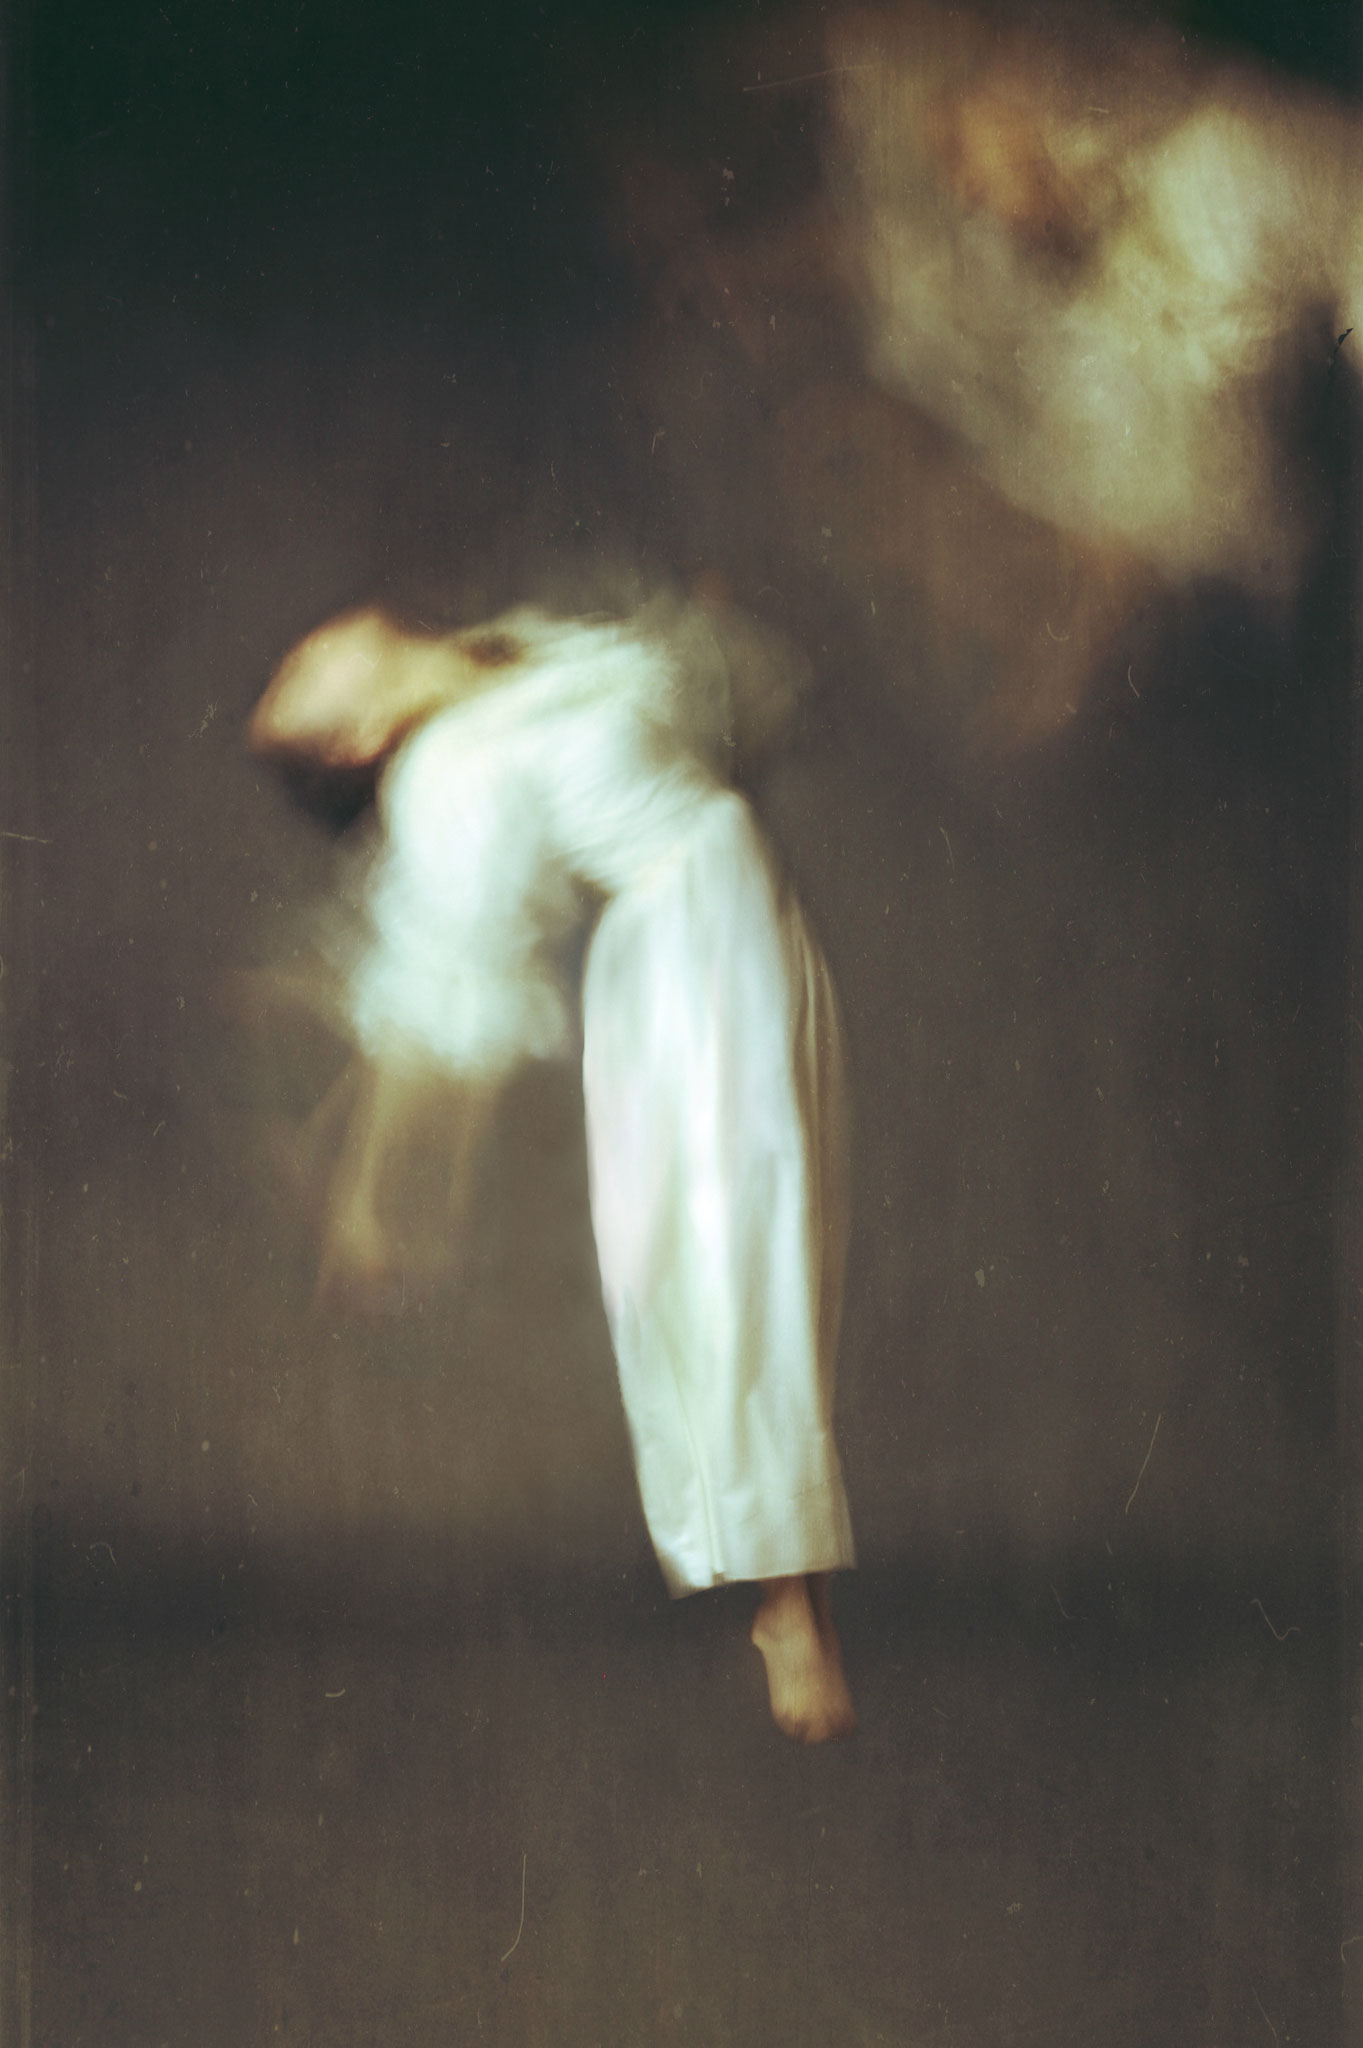 Josephine_Cardin_article_19